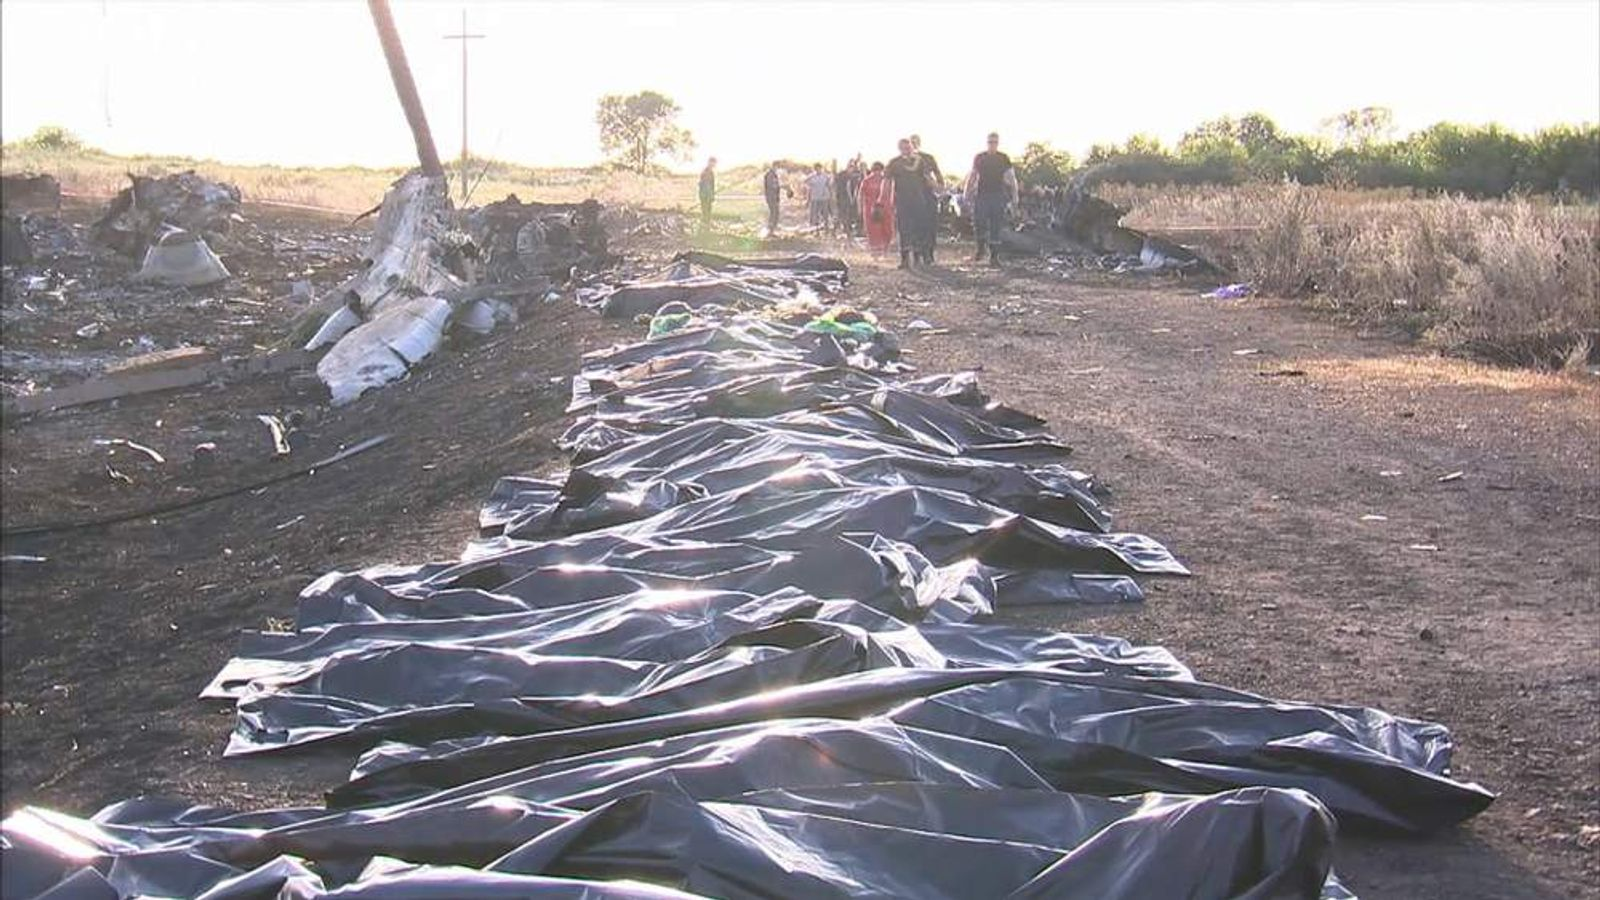 Body bags lined up at the scene of the MH17 crash in eastern Ukraine.